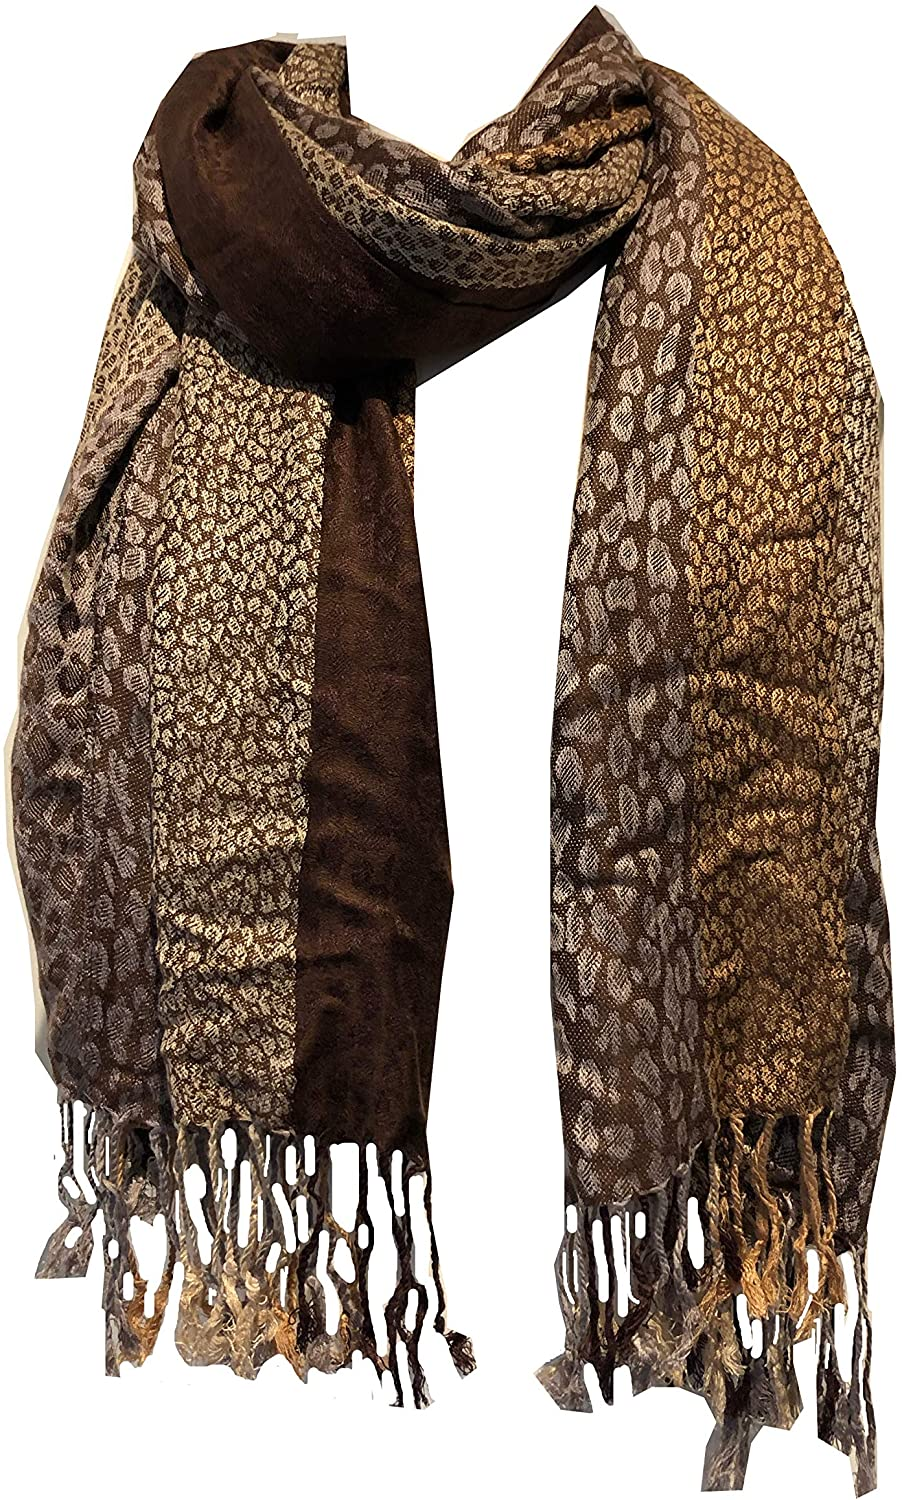 Dark Brown and Brown Animal Print Pashmina Style Scarf/wrap/Shawl. Fantastic Stylish Gift/Present